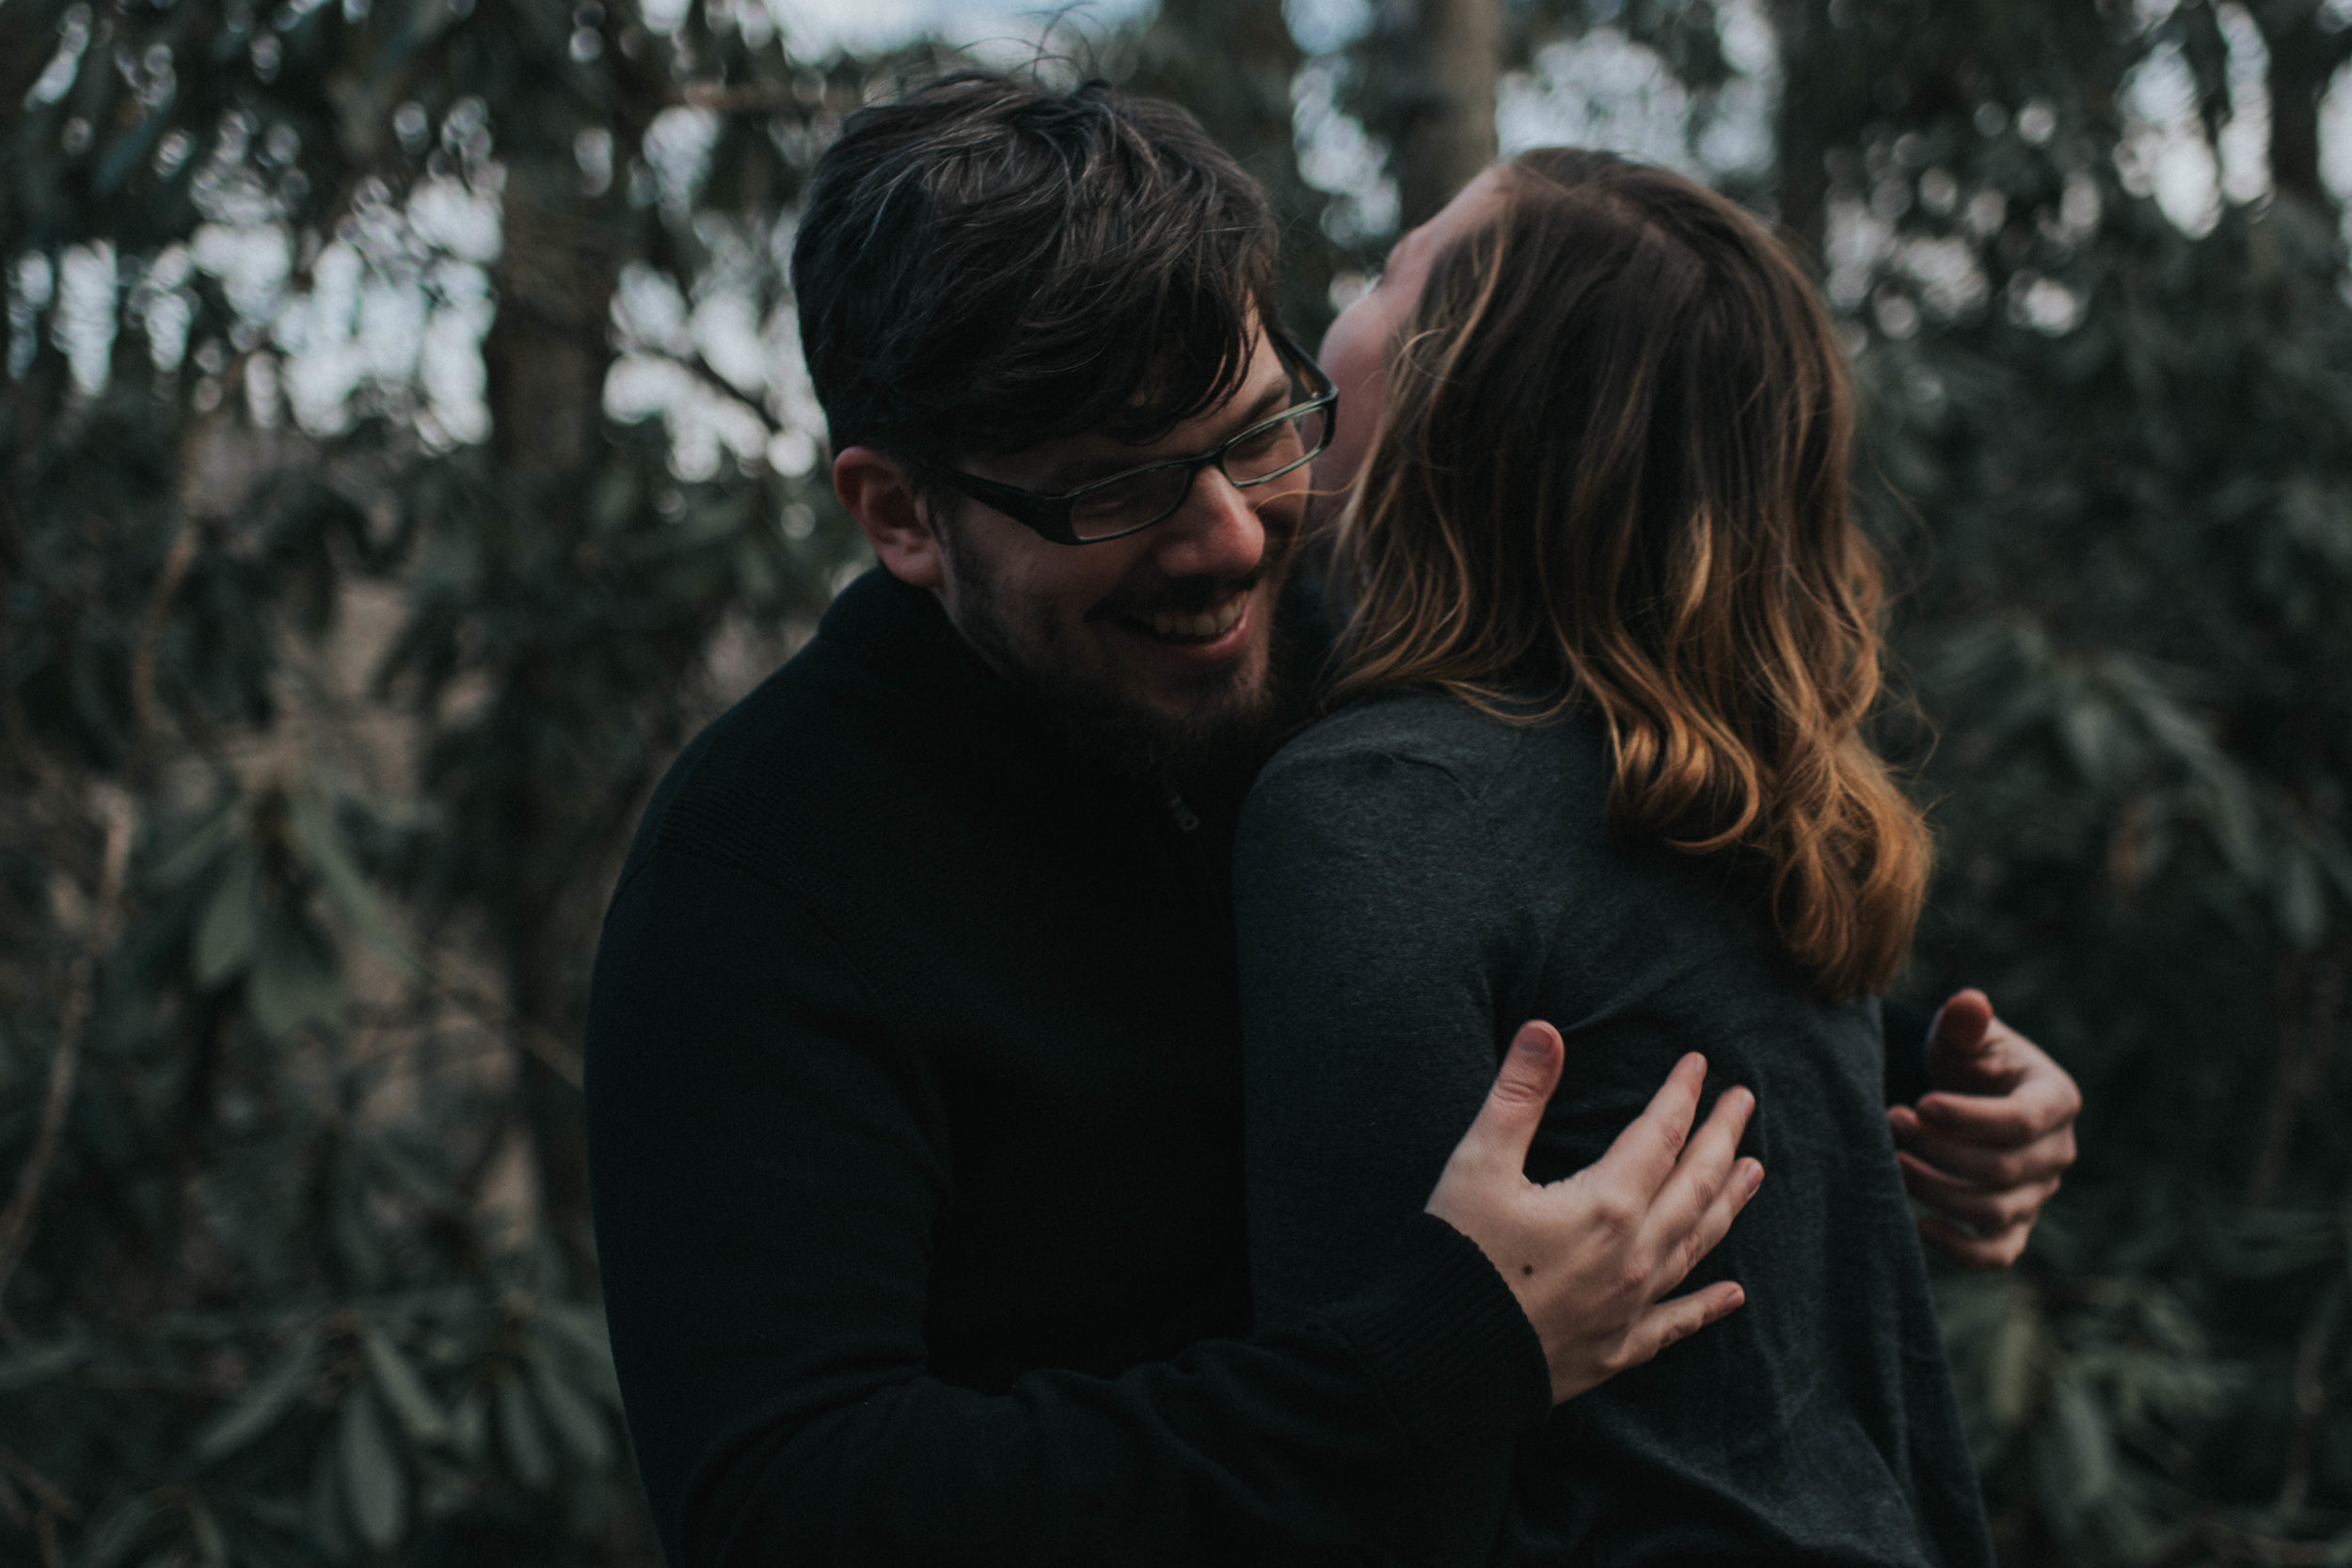 Adventure Engagement Session at Beauty Spot in Kingsport, Tennessee